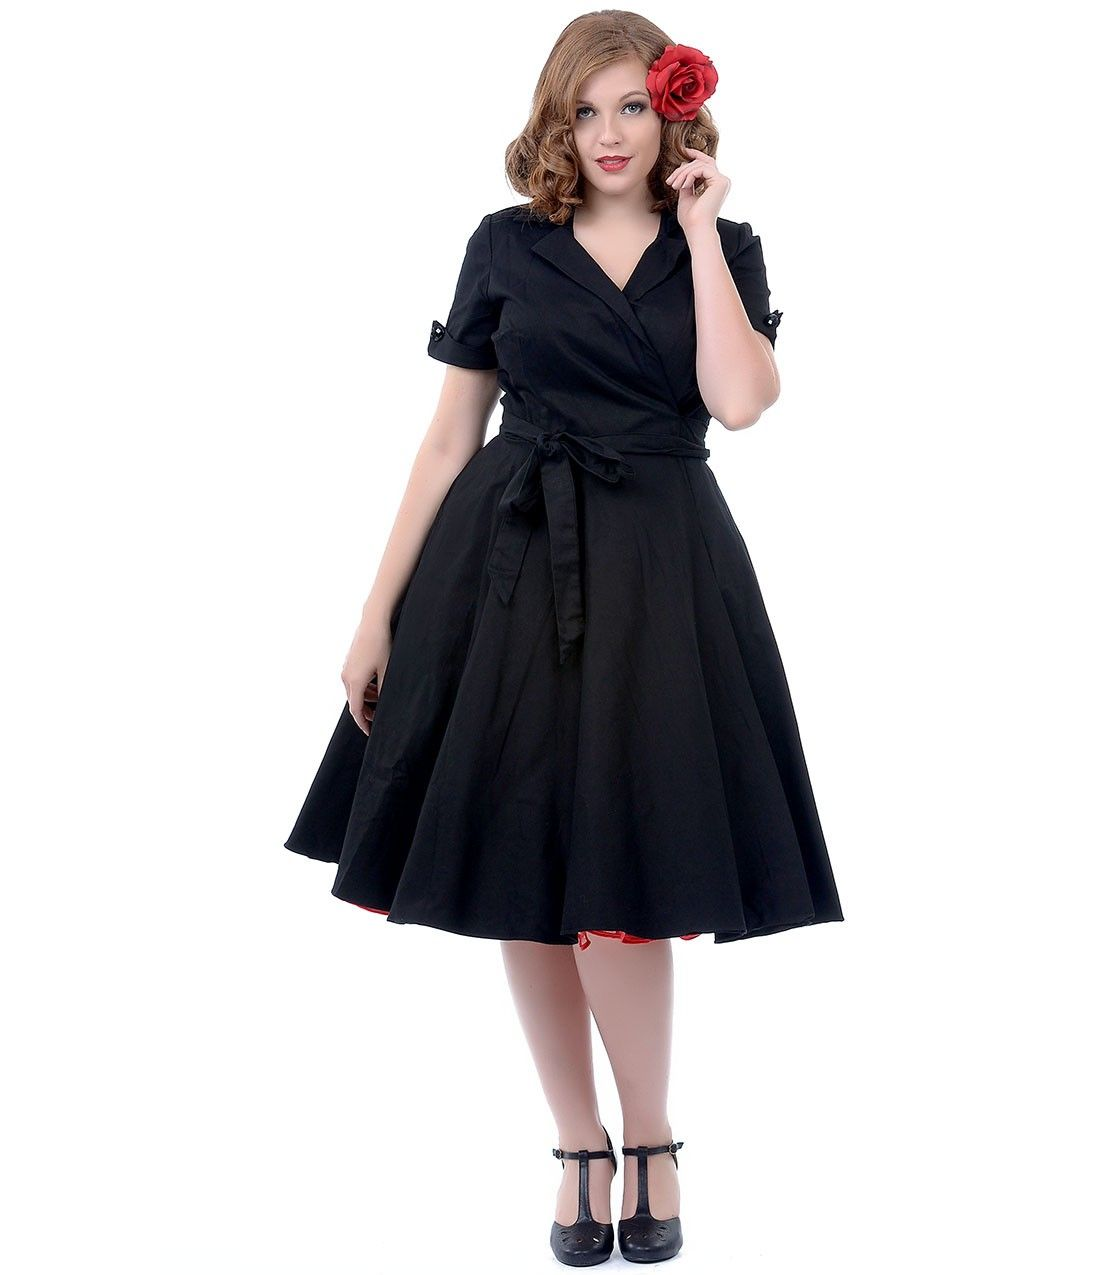 Plus size retro black dress | Good style dresses | Pinterest | Retro